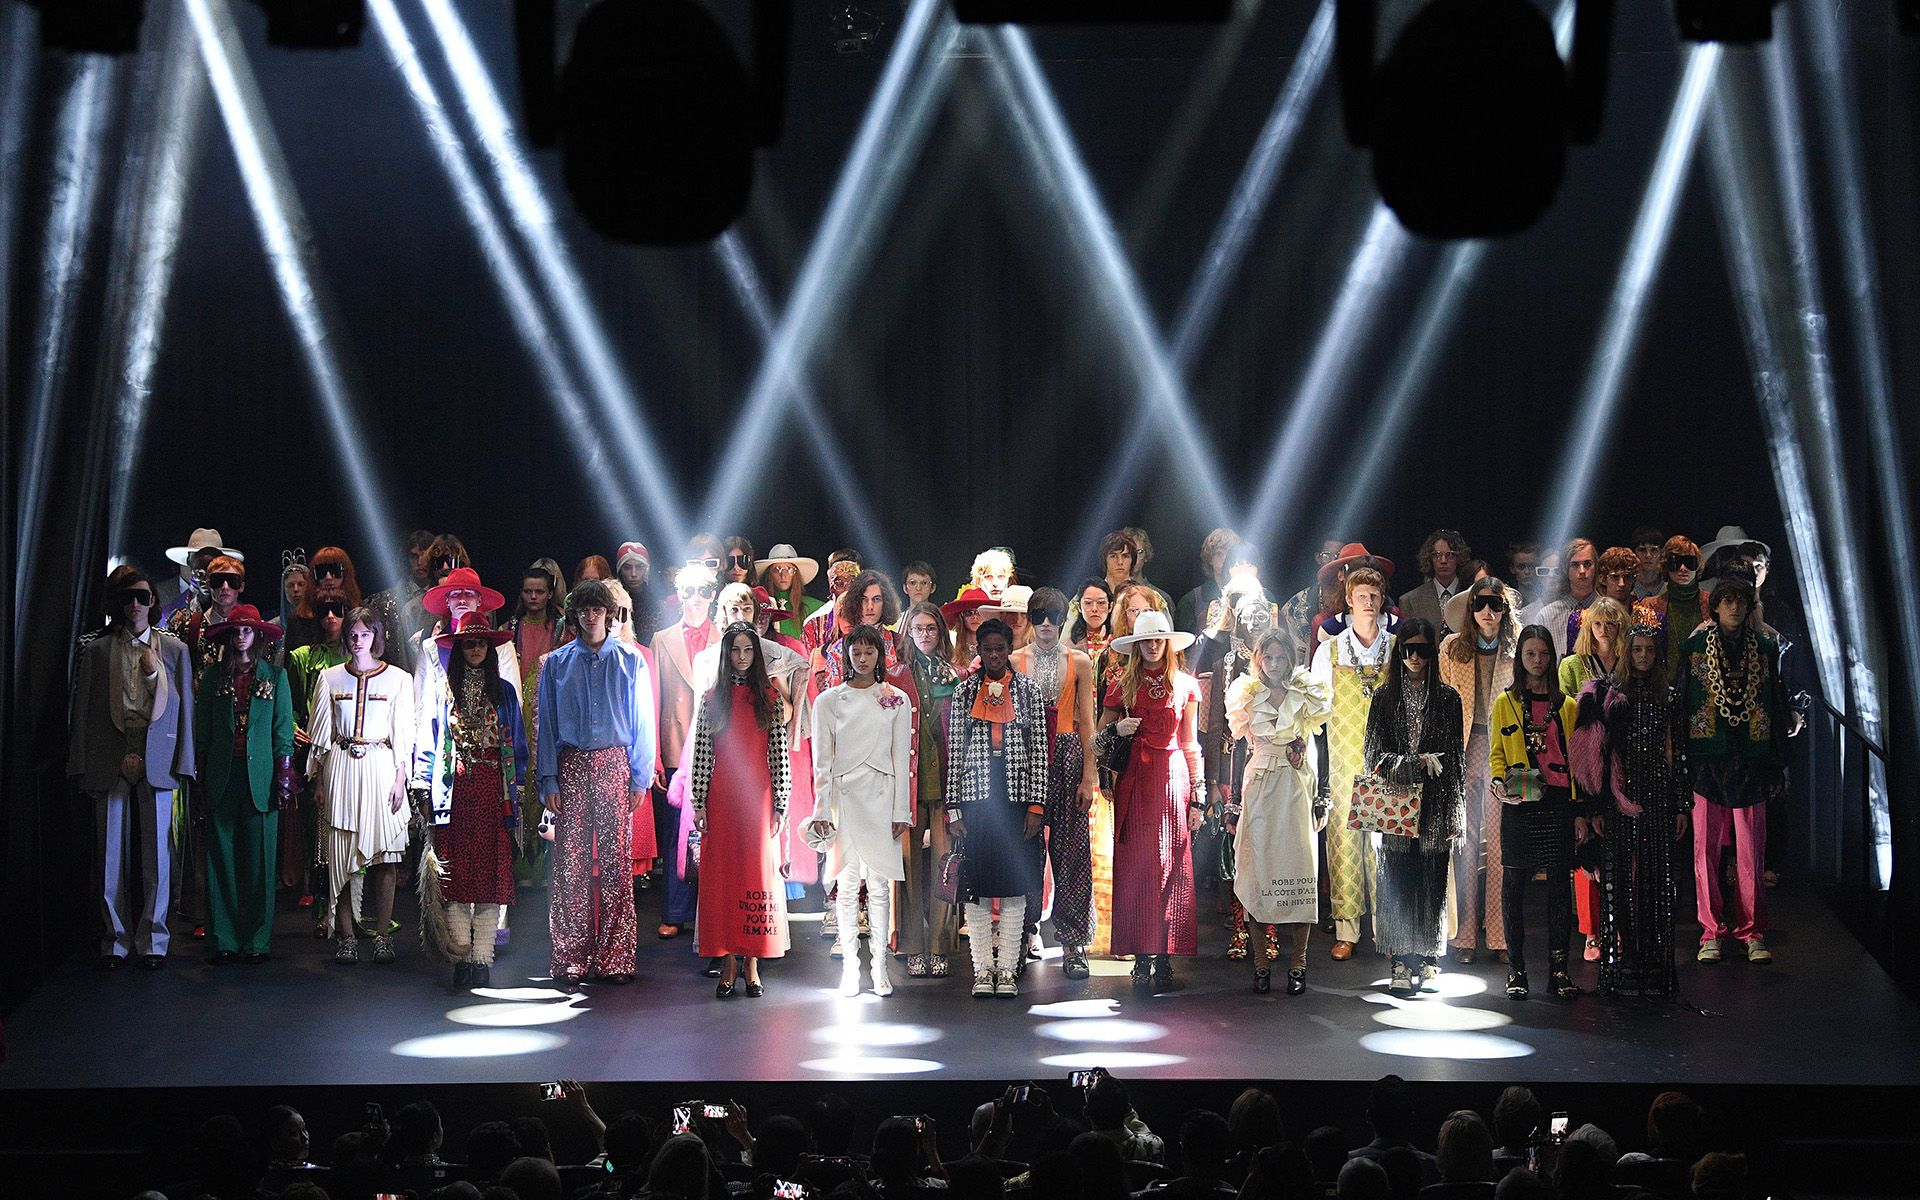 Gucci Spring/Summer 2019 explores the radical theme of complexities